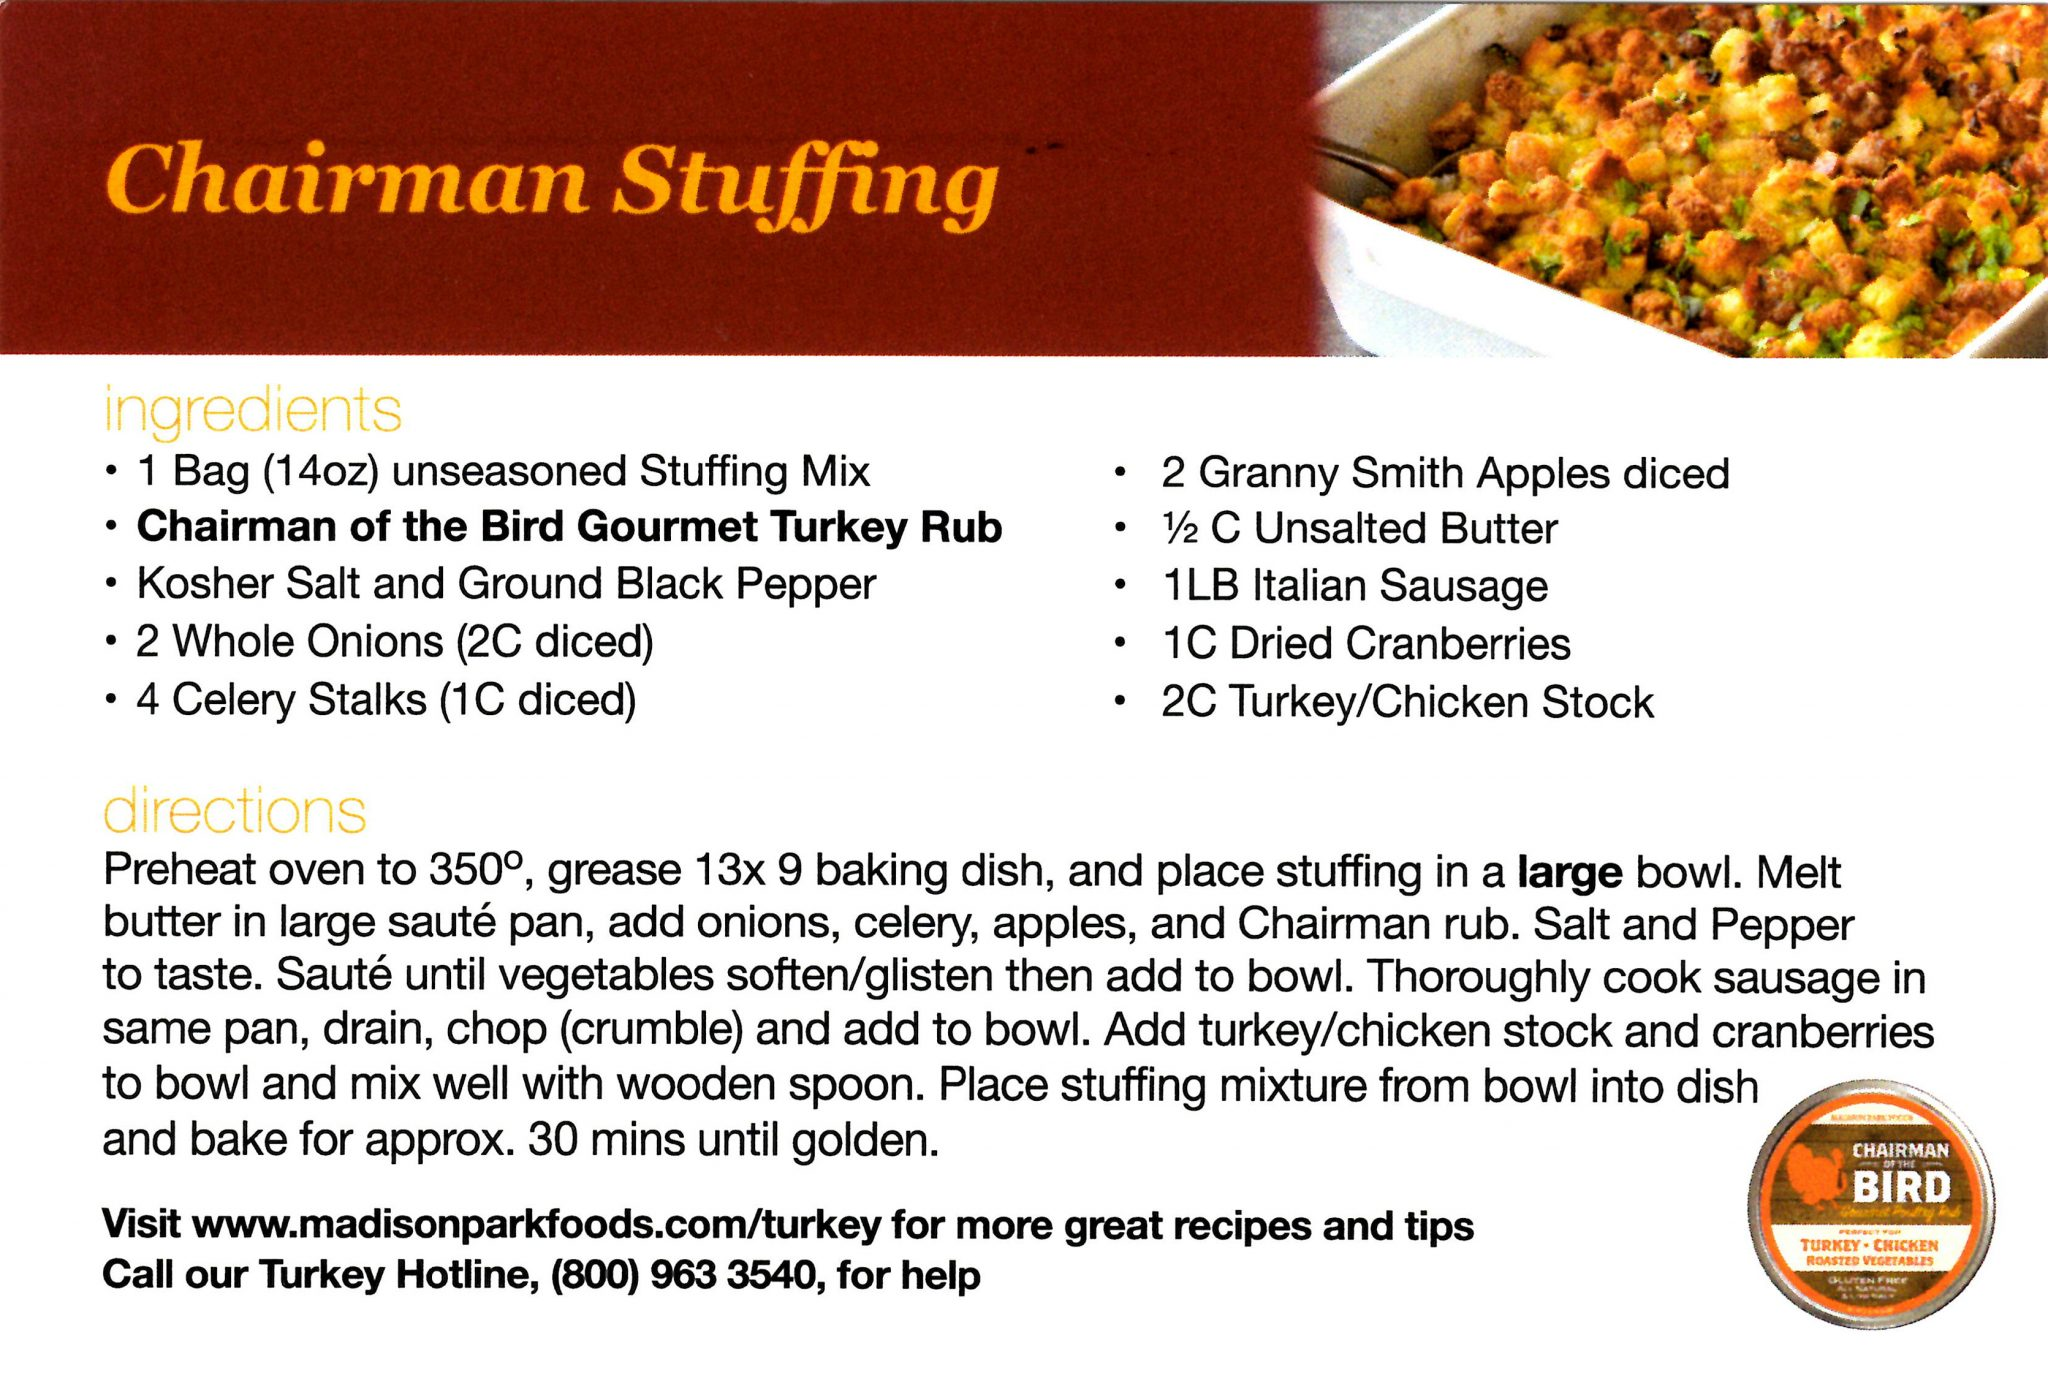 Madison Park Foods Chairman Stuffing Recipe Card